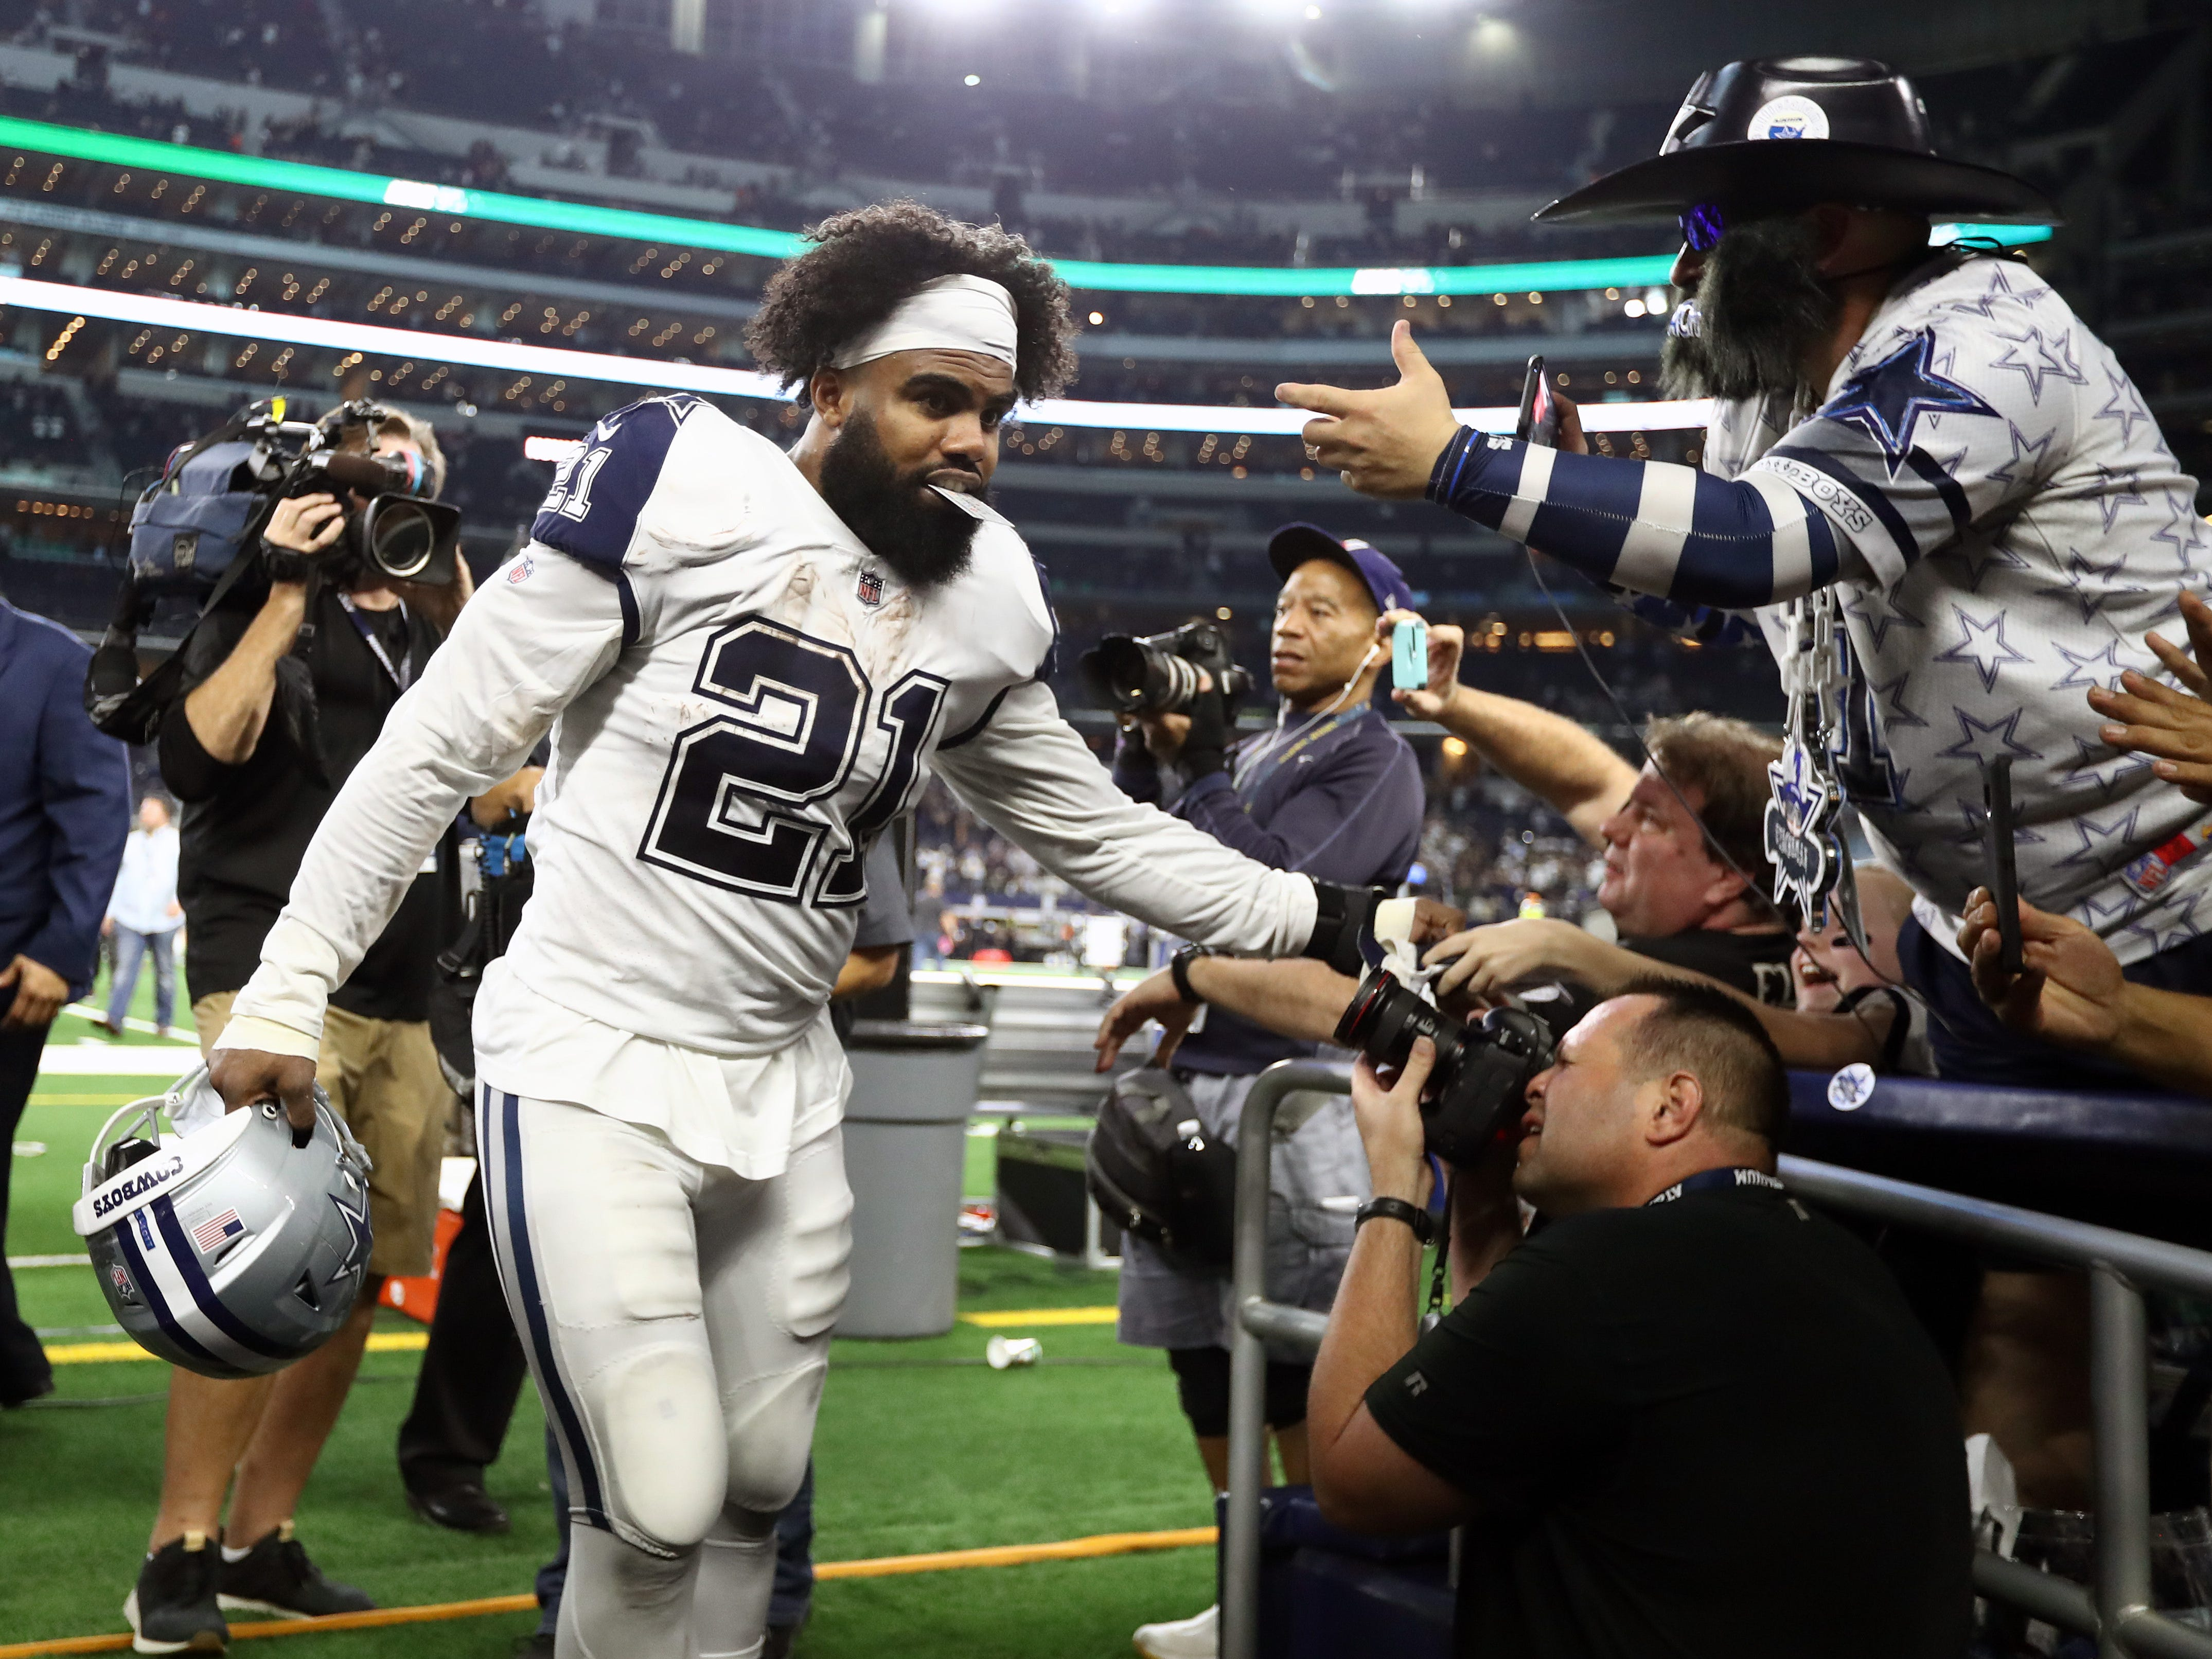 Dallas Cowboys running back Ezekiel Elliott celebrates with fans after a victory against the New Orleans Saints at AT&T Stadium.